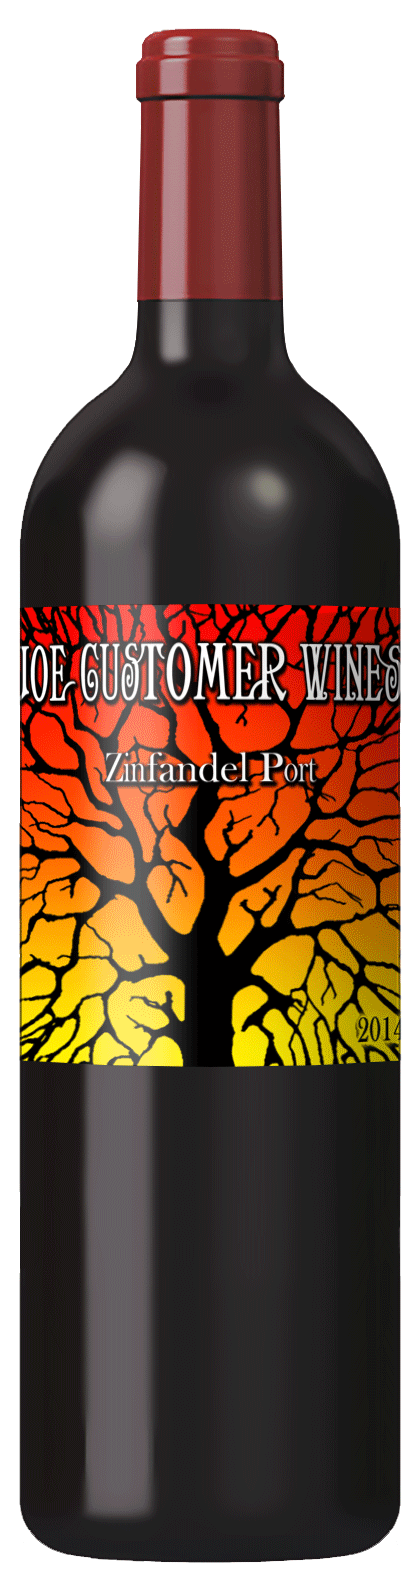 custom personalized wine label of black tree against colorful background